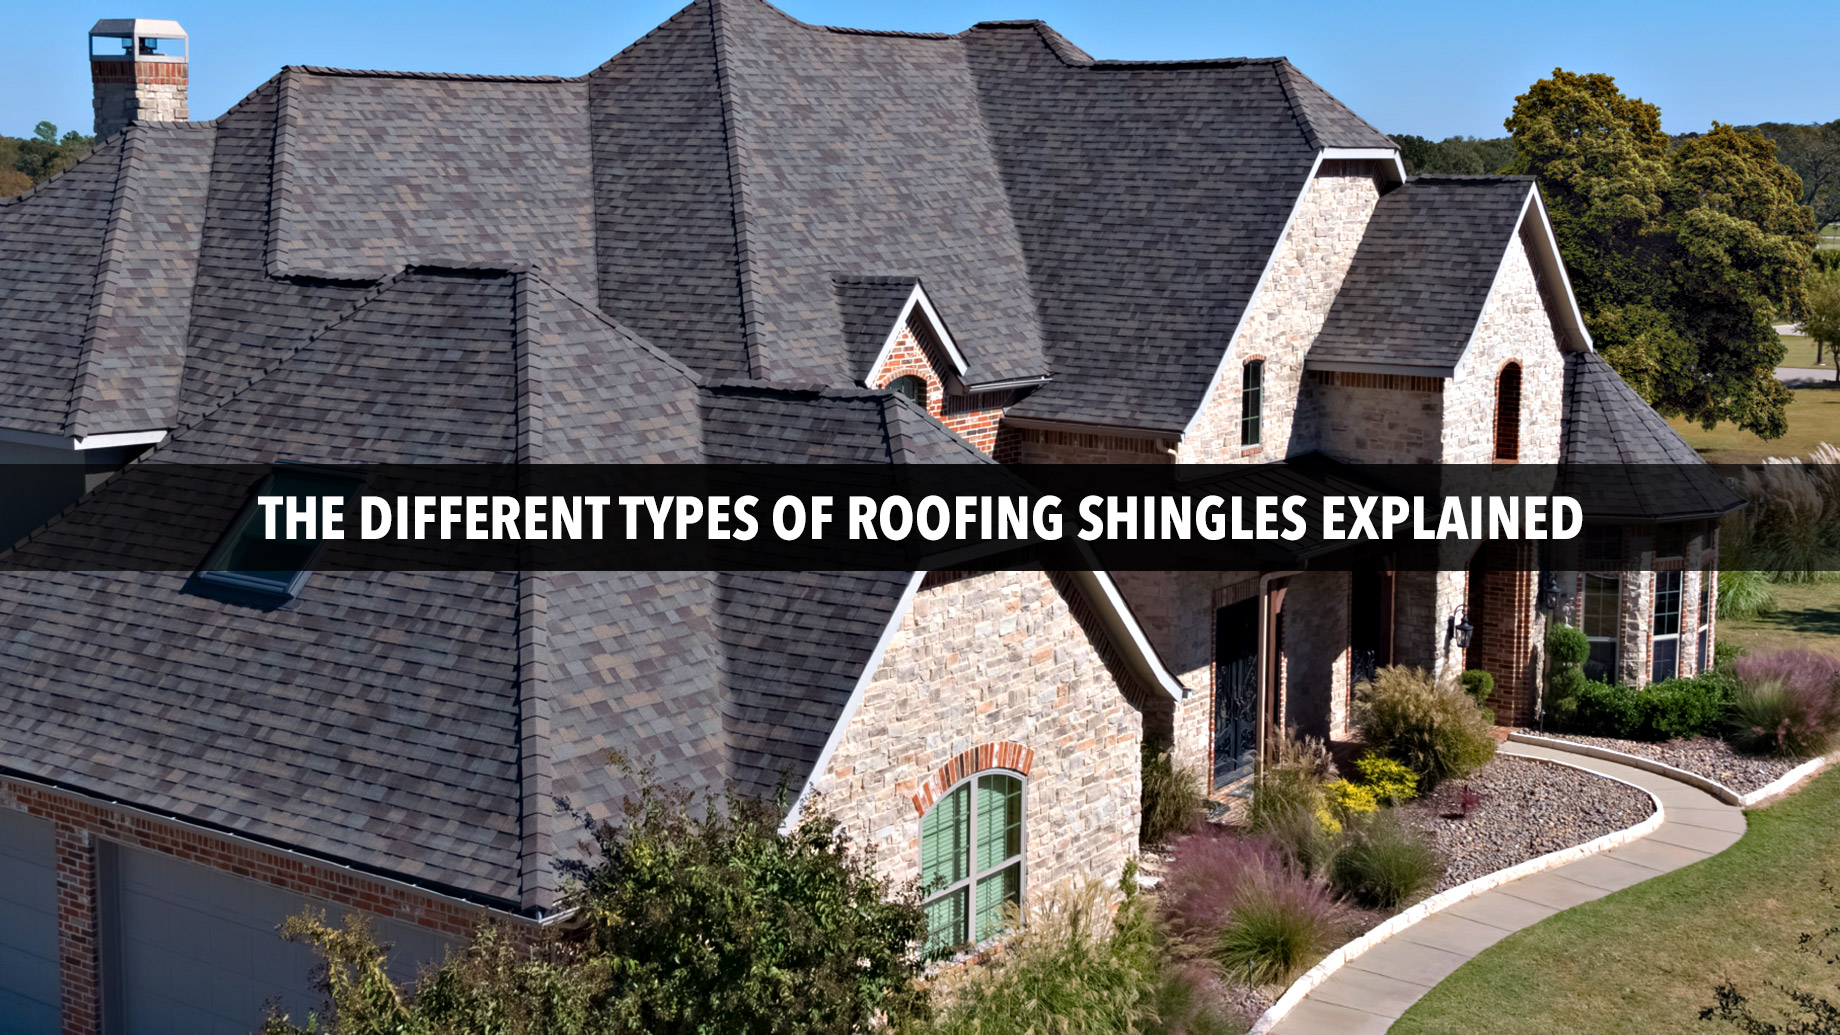 The Different Types of Roofing Shingles Explained